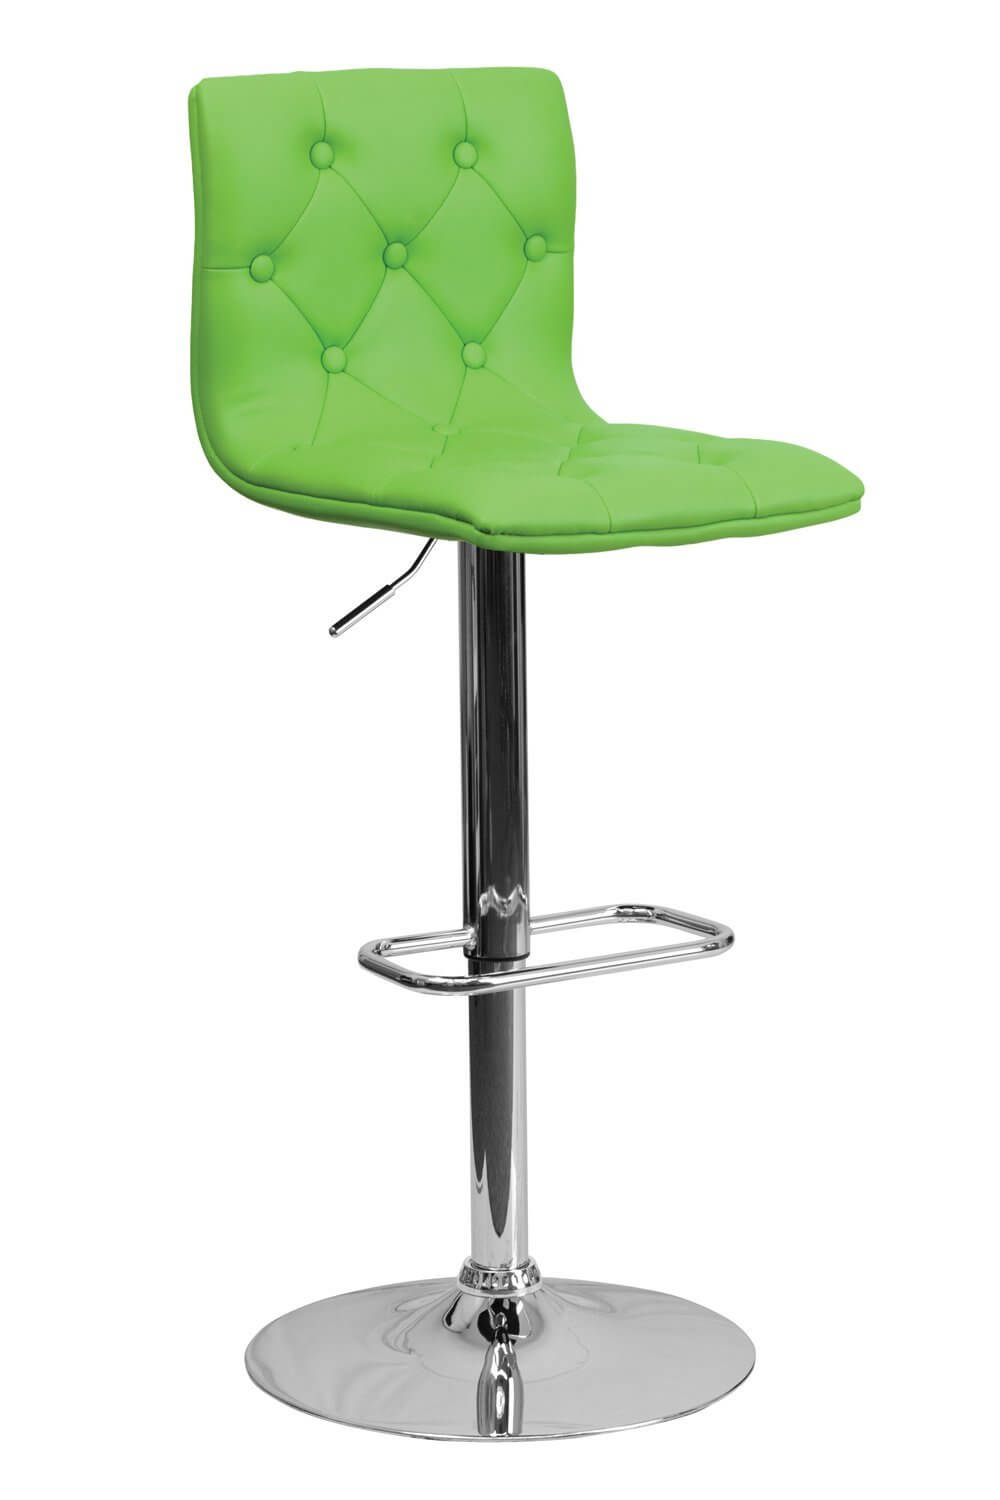 Modern green upholstered stool with chrome-finished pedestal base.